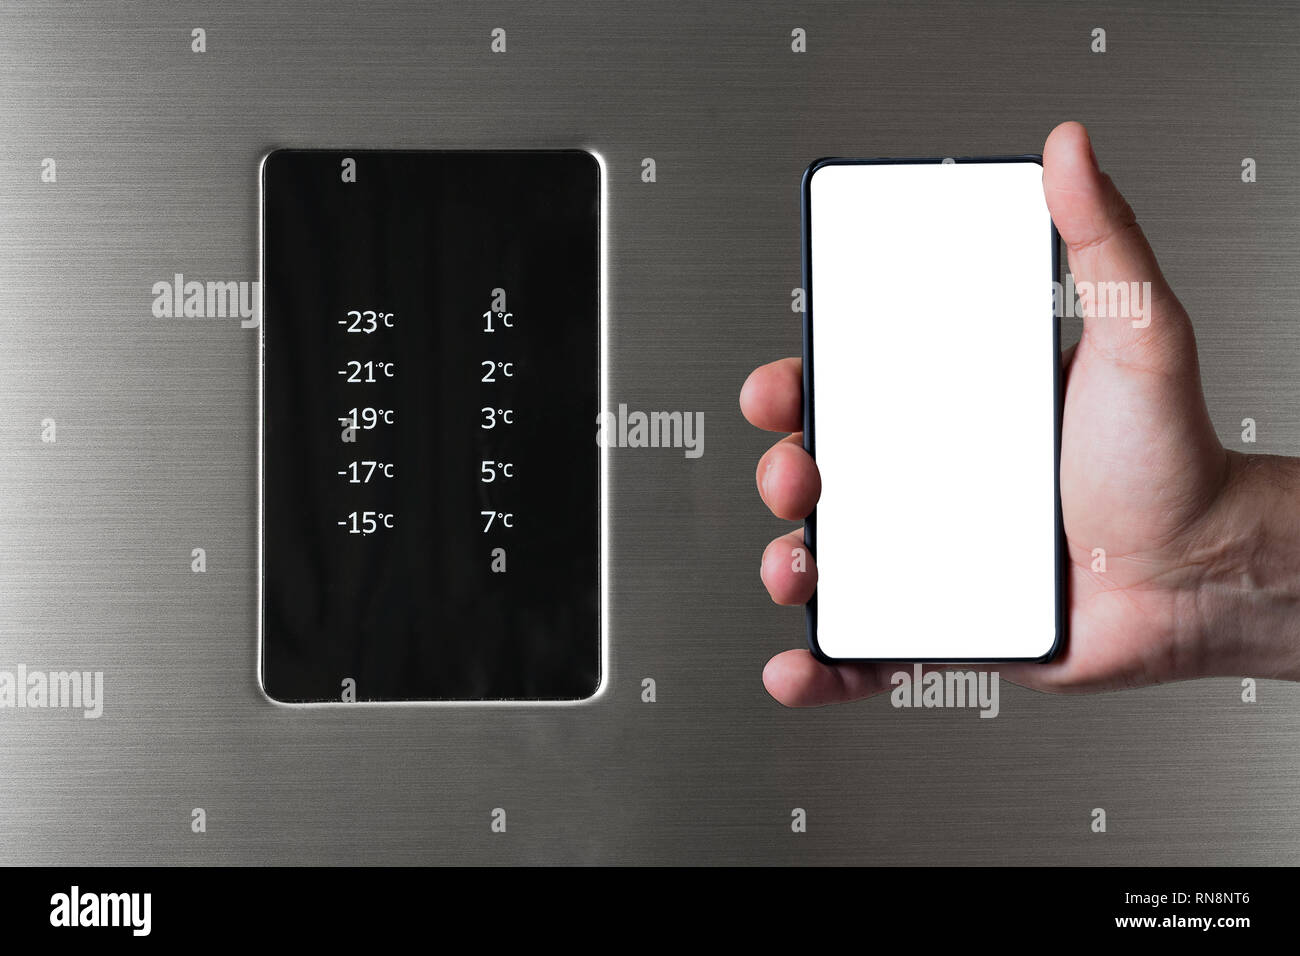 Hand holding frameless smartphone near fridge and freezer control panel. Internet of things abstract concept. - Stock Image